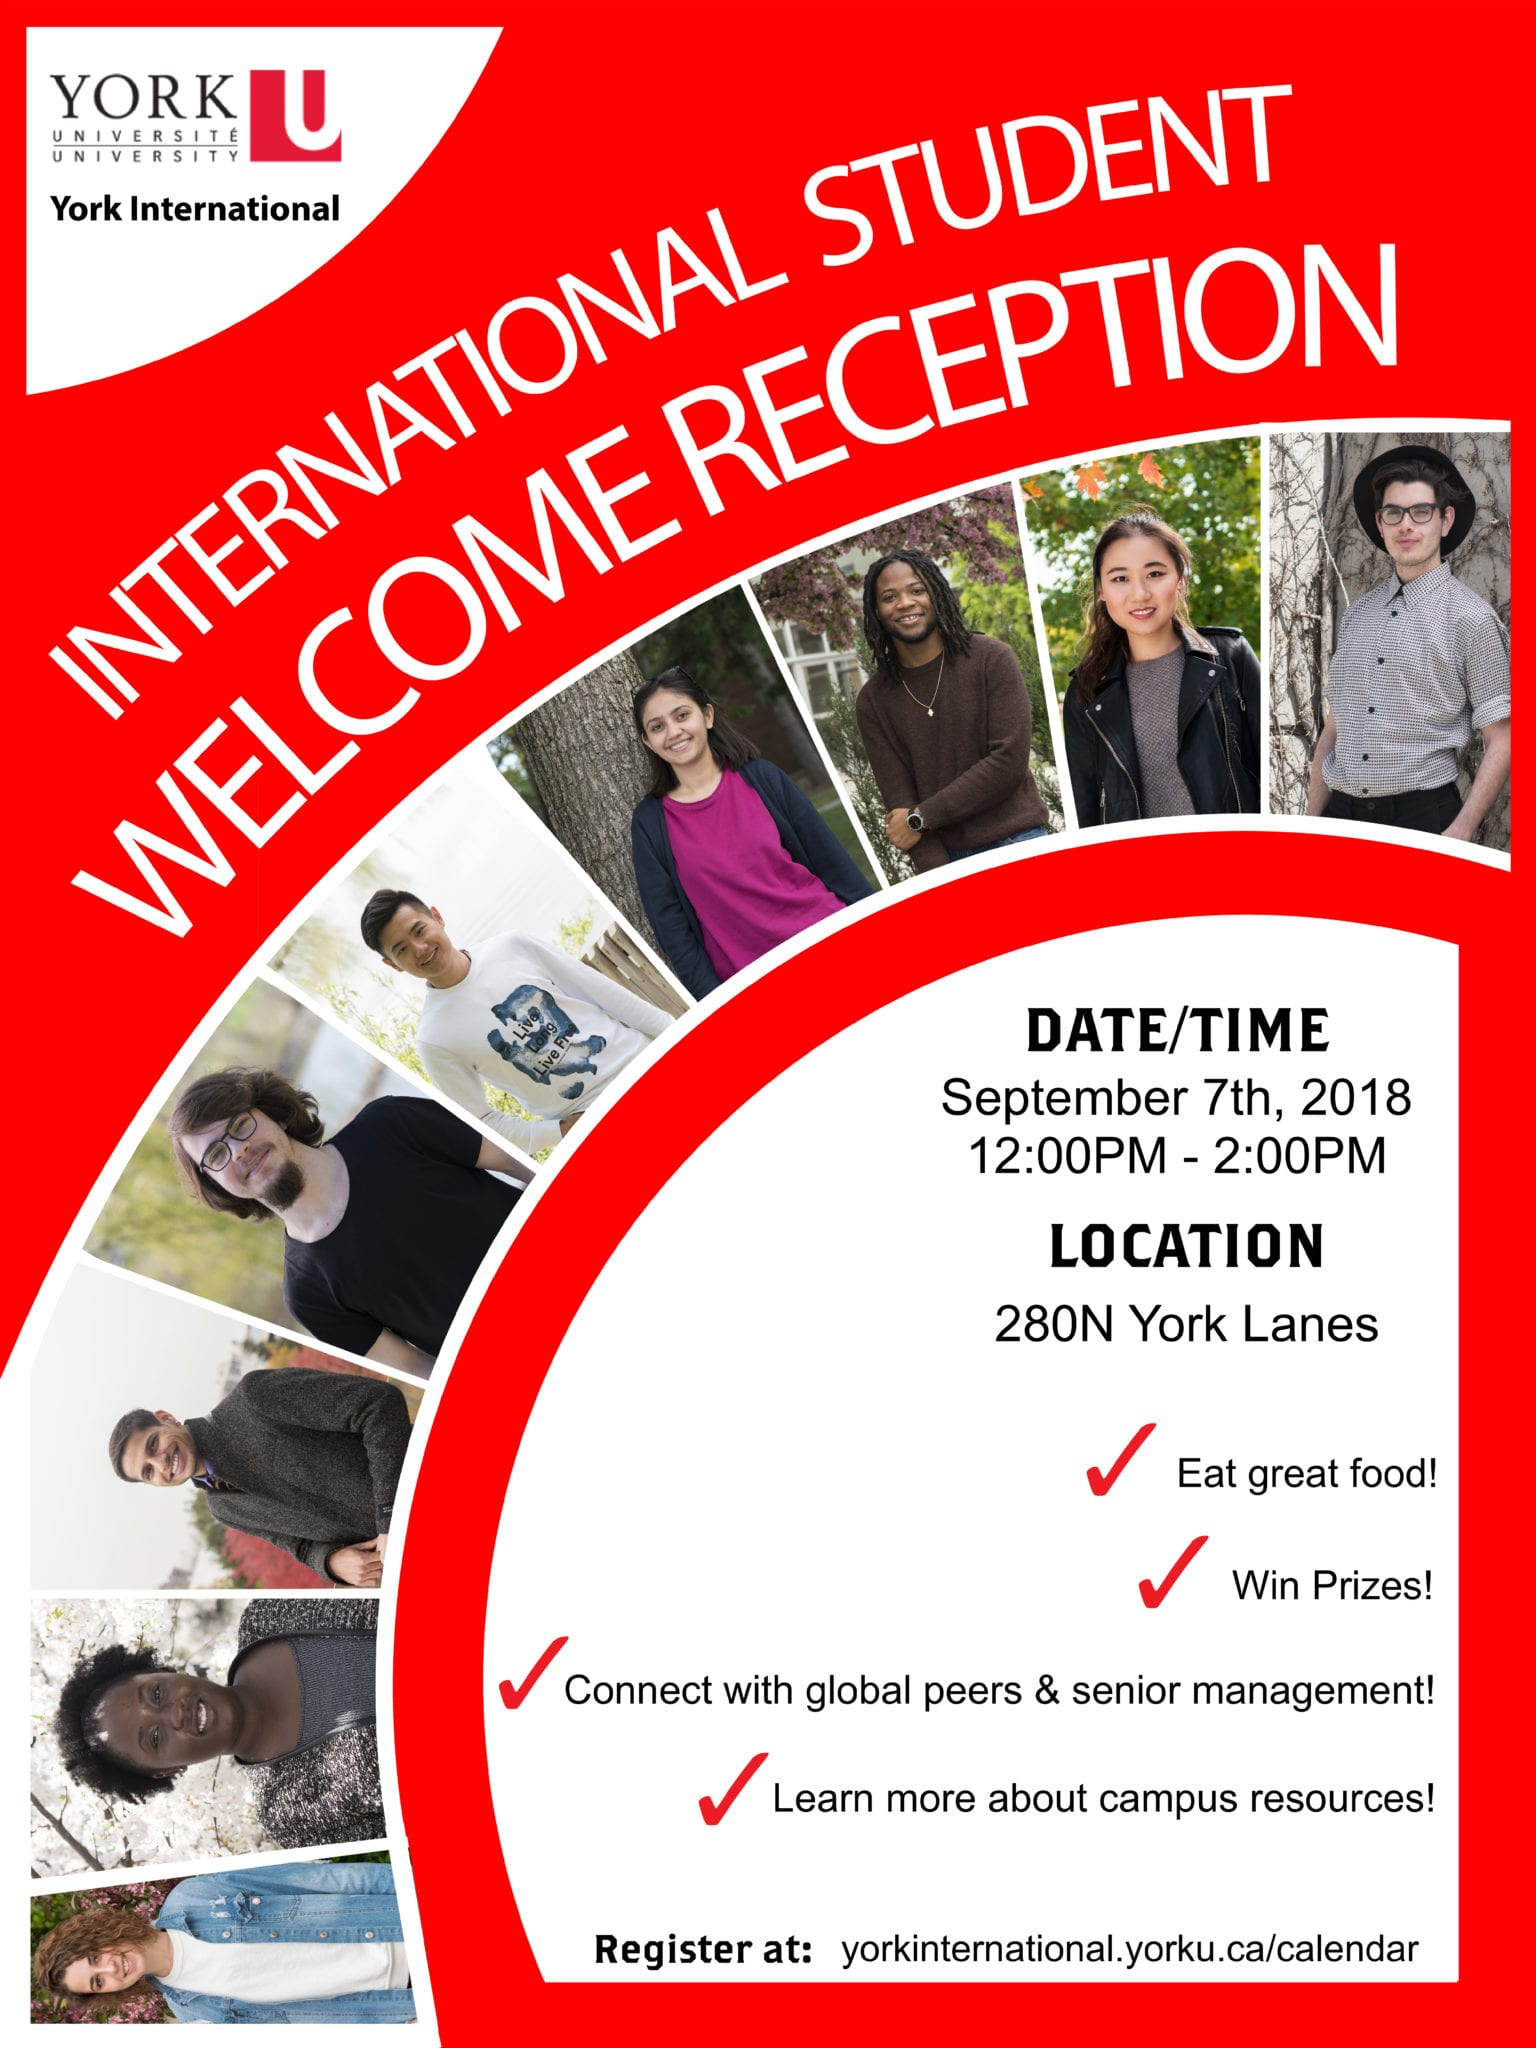 Welcome Reception for International Students @ York Lanes, Room 280N (second floor)